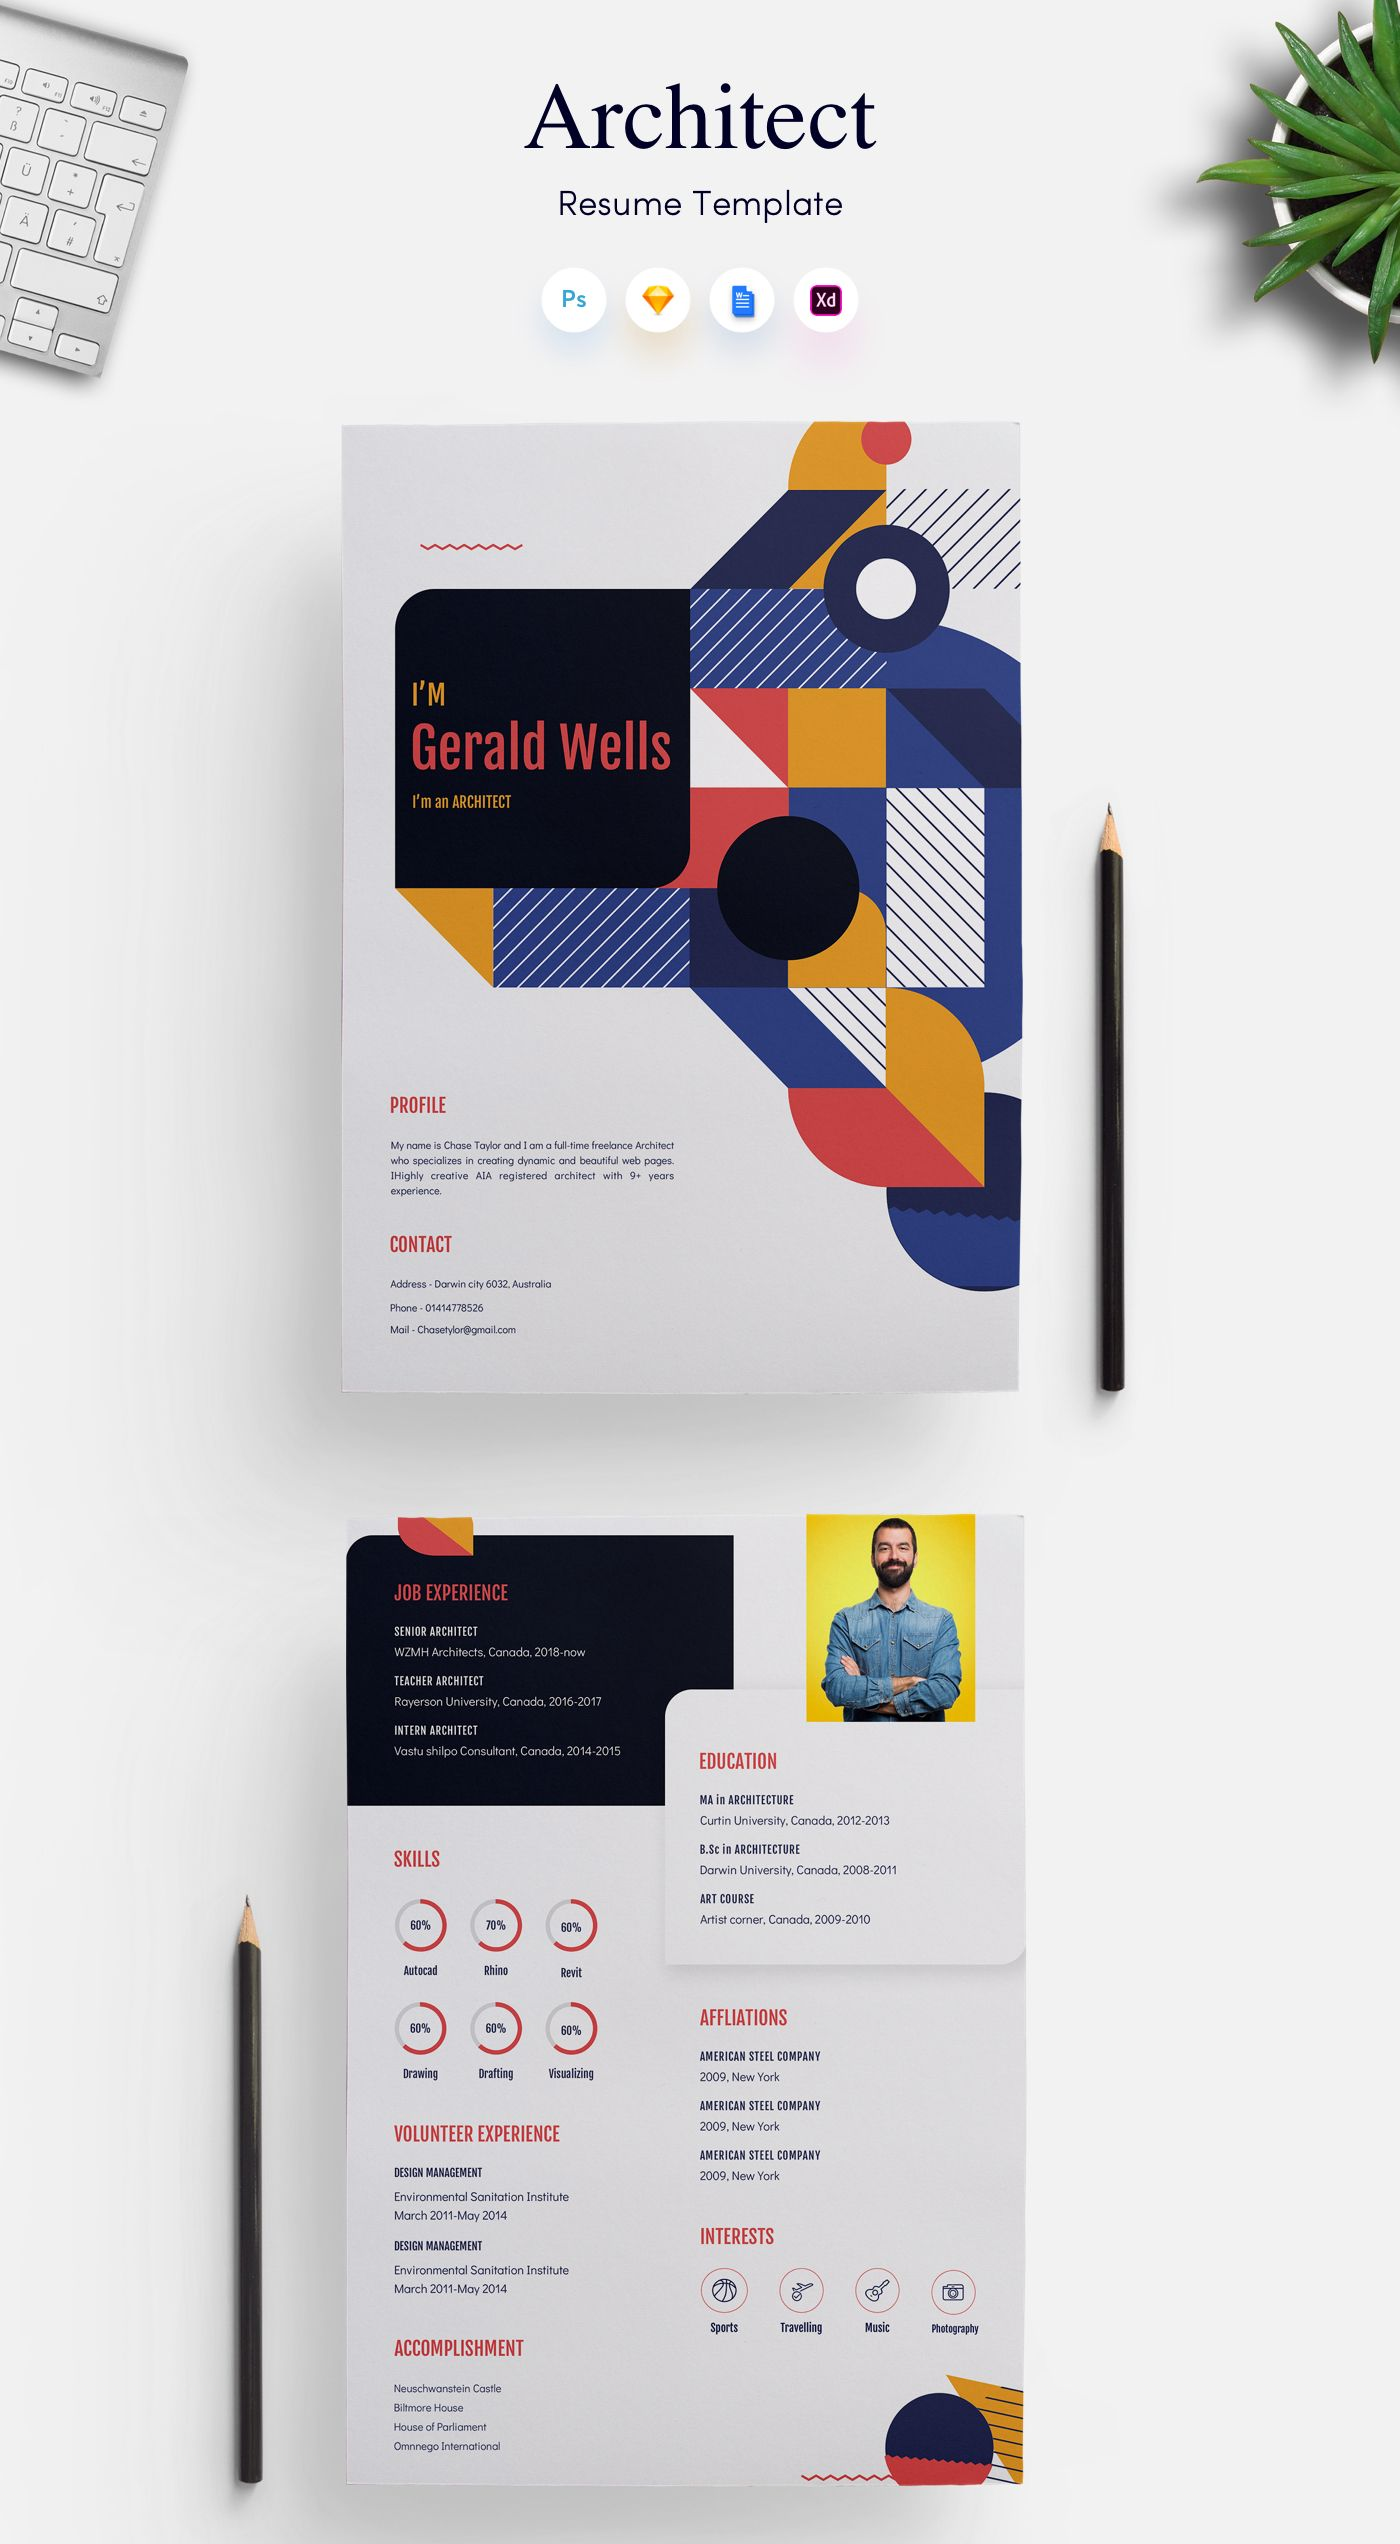 Architects Cv Resume Template Get Psd Sketch Resume Templates Creative Cv Resume Design Creative Cv Resume Template